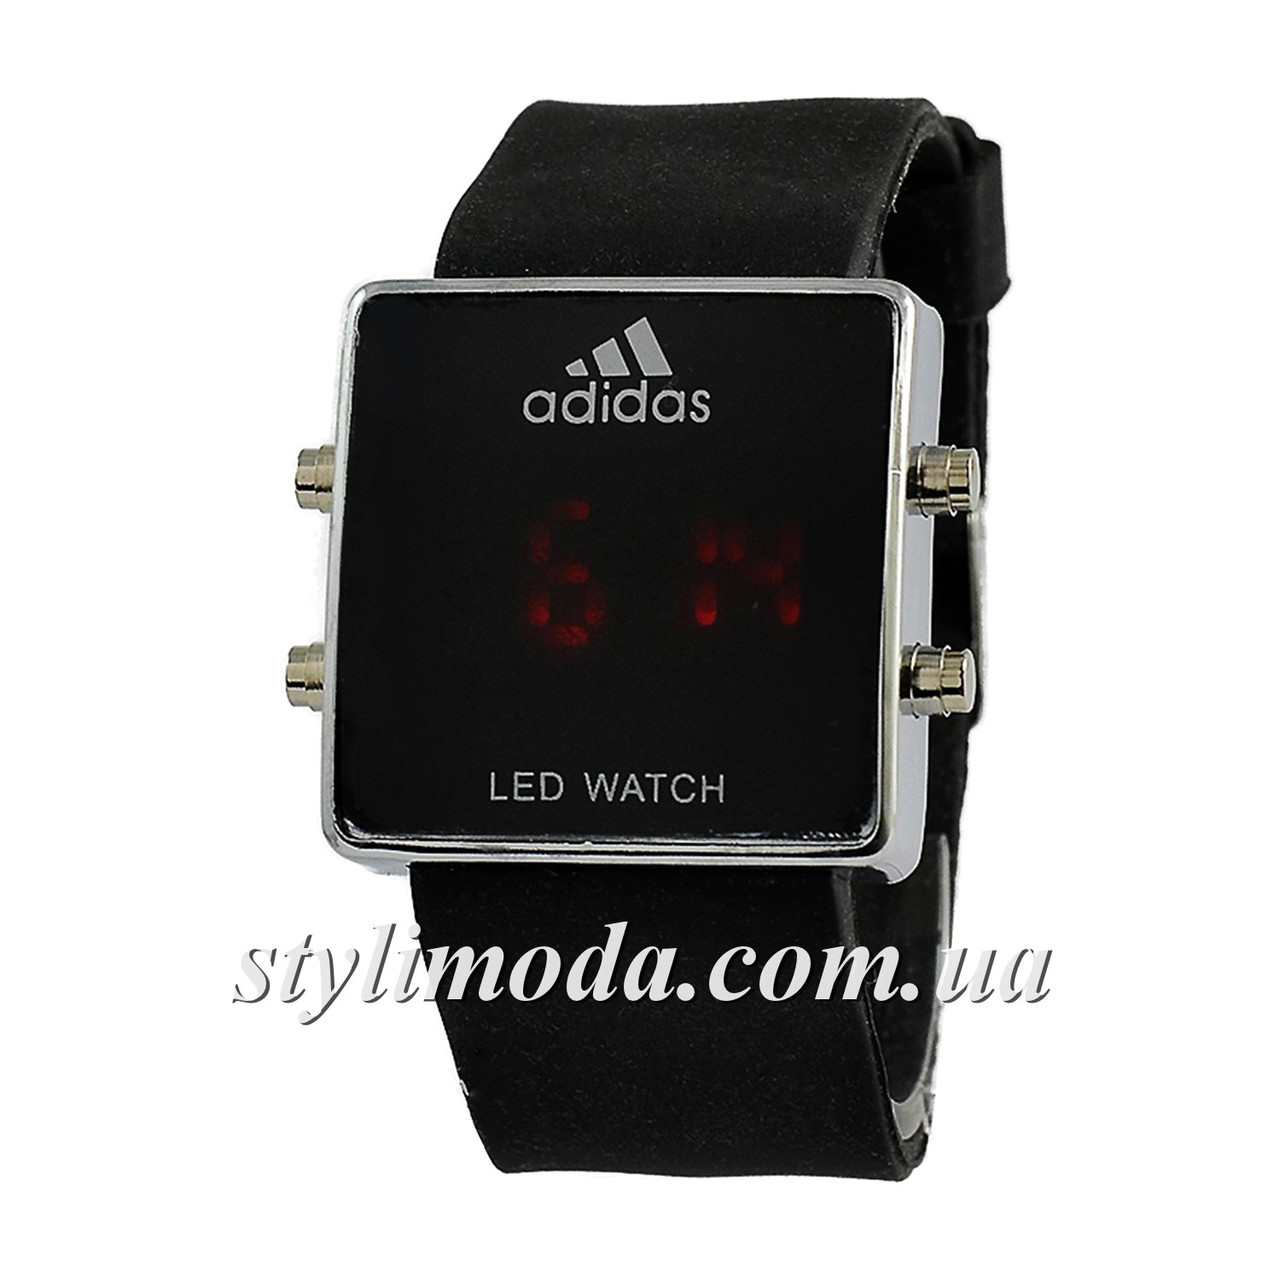 e71268dc Часы наручные Adidas Led Watch Black-Silver-Black - Stylimoda -  интернет-магазин